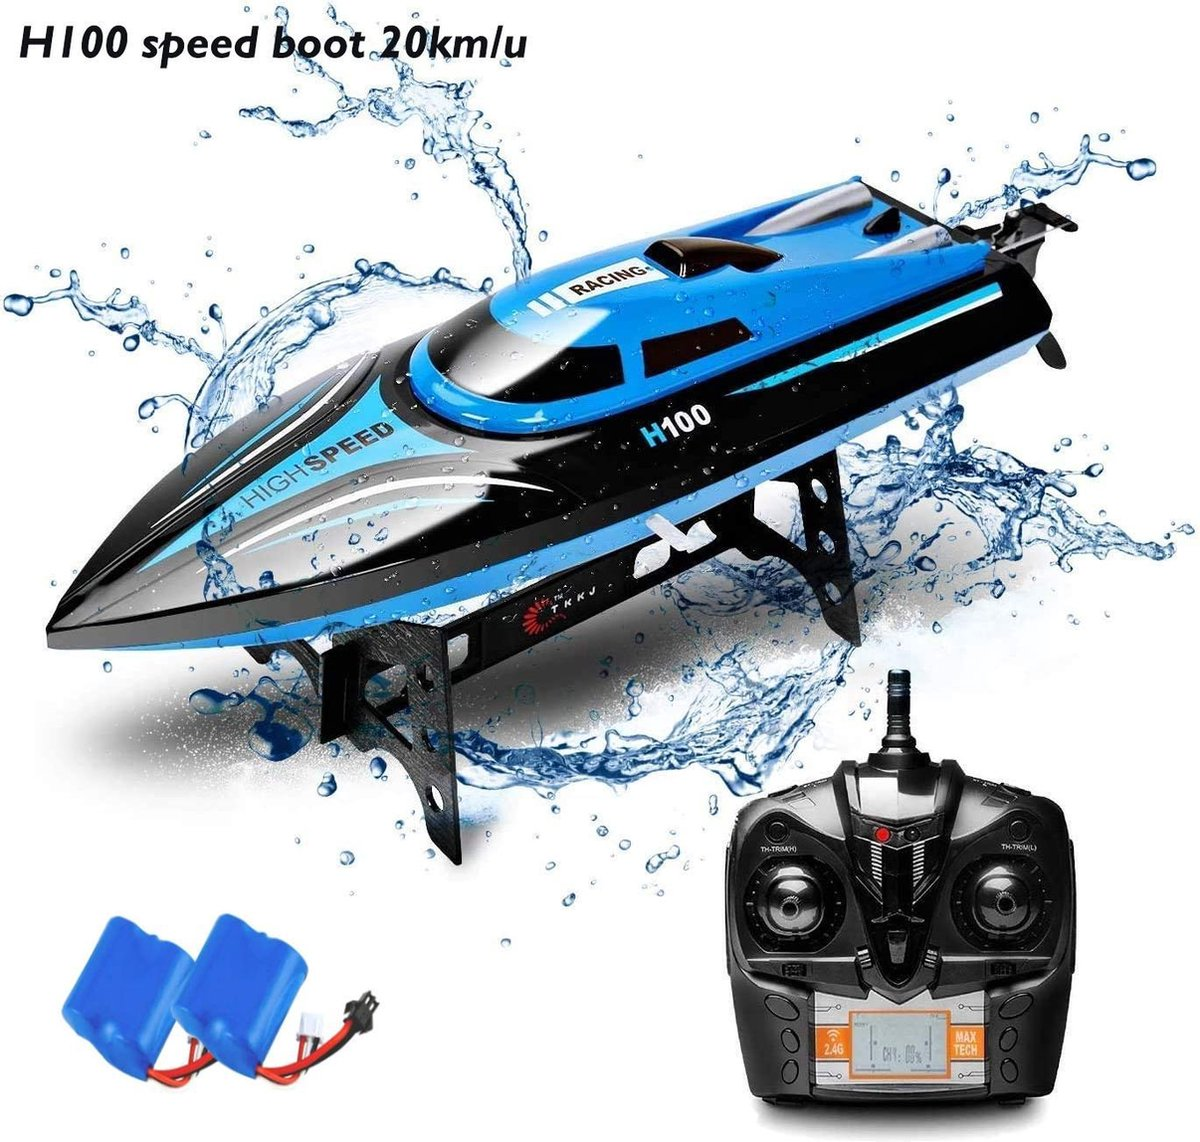 RC Race Boot H100- High Speed Racing Boat 2.4GHZ - Skytech SPEED 20KM -radiografisch boot ( 2x accu)